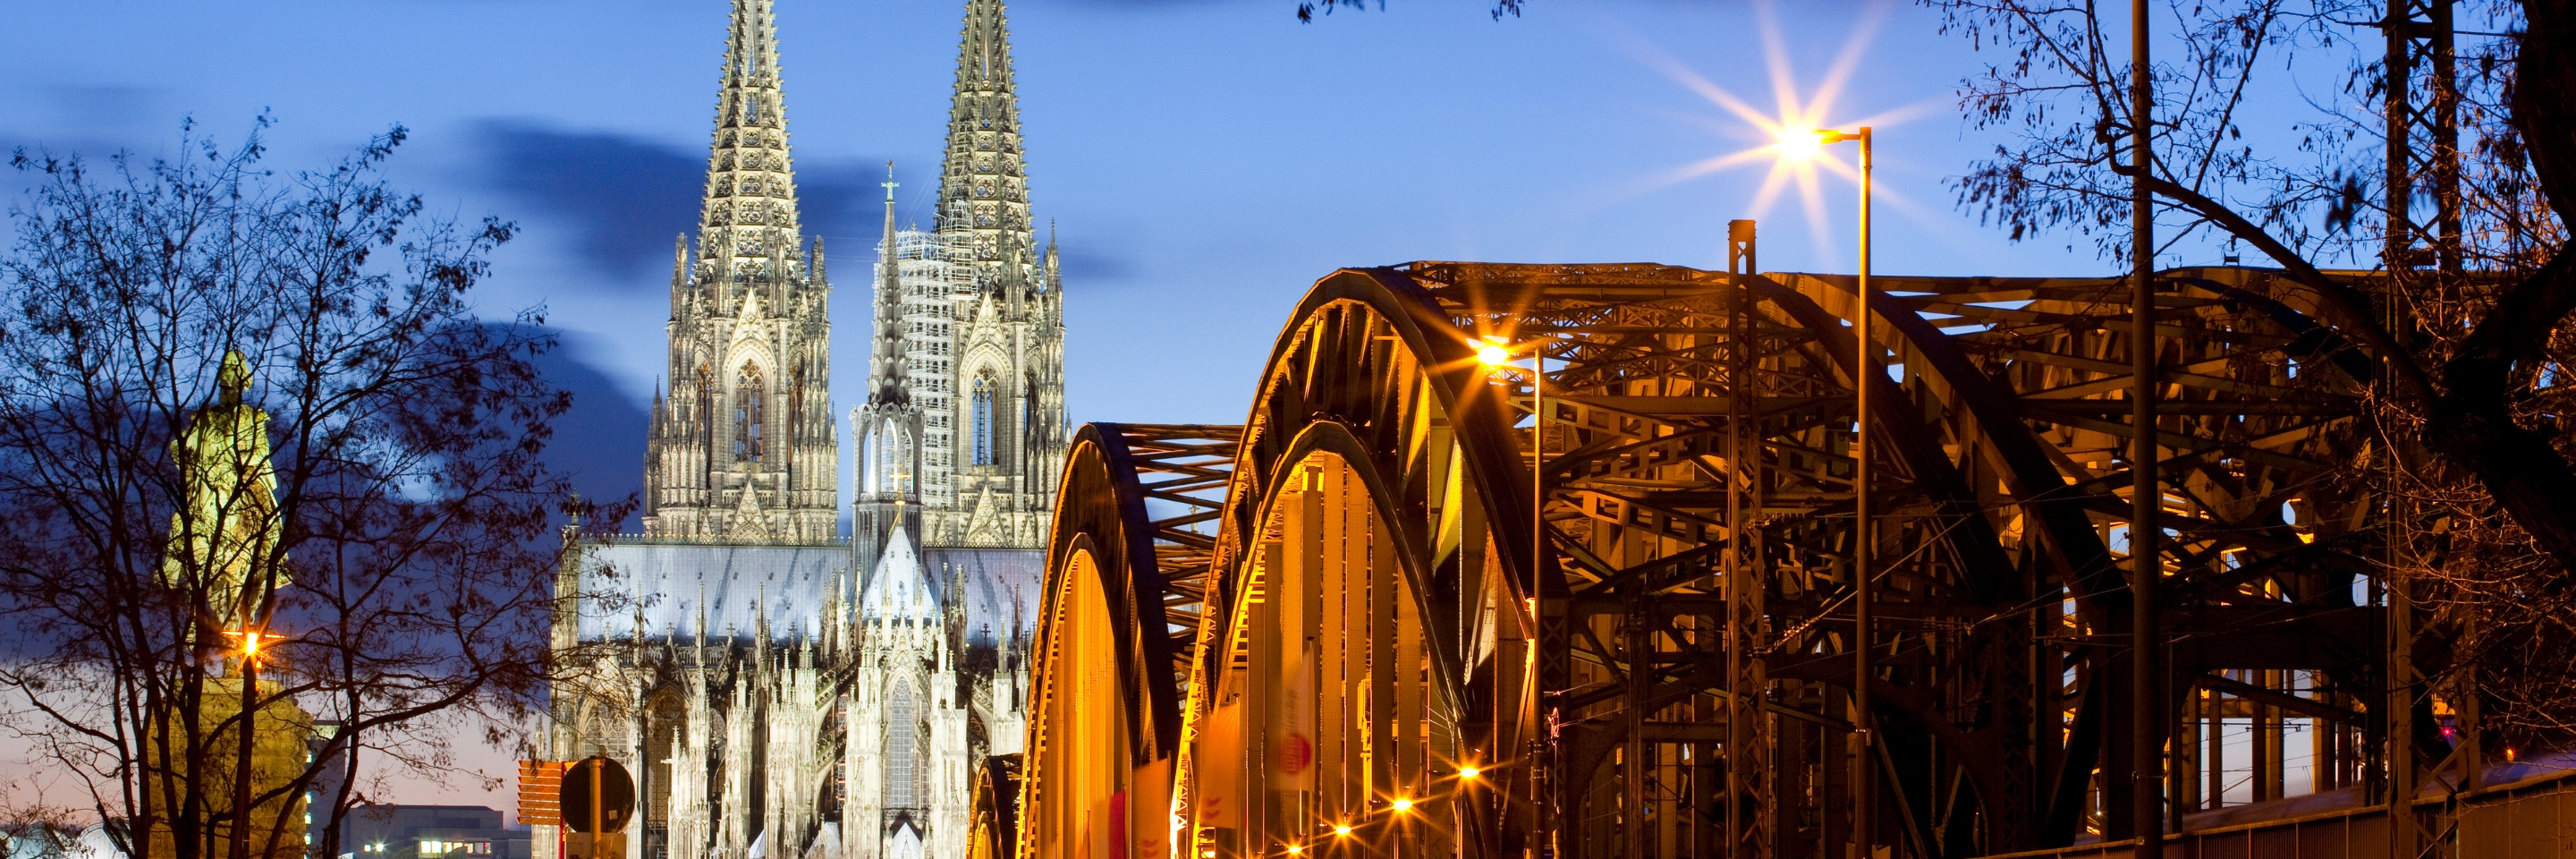 Festive Time on the Romantic Rhine with 3 Nights in Lake Como,   1 Night in Lucerne, Mount Pilatus, 2   Nights in Paris & 2 Nights in London (Northbound)